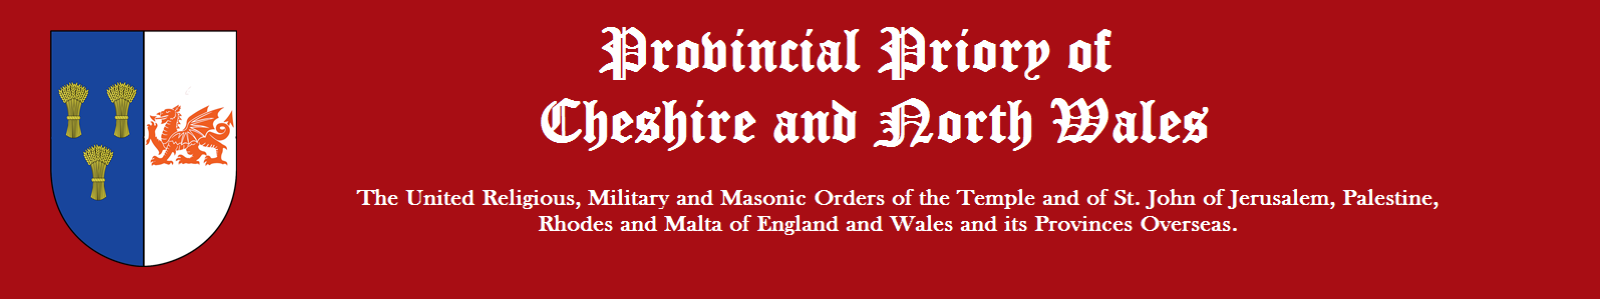 Cheshire and North Wales Priory of Knights Templar